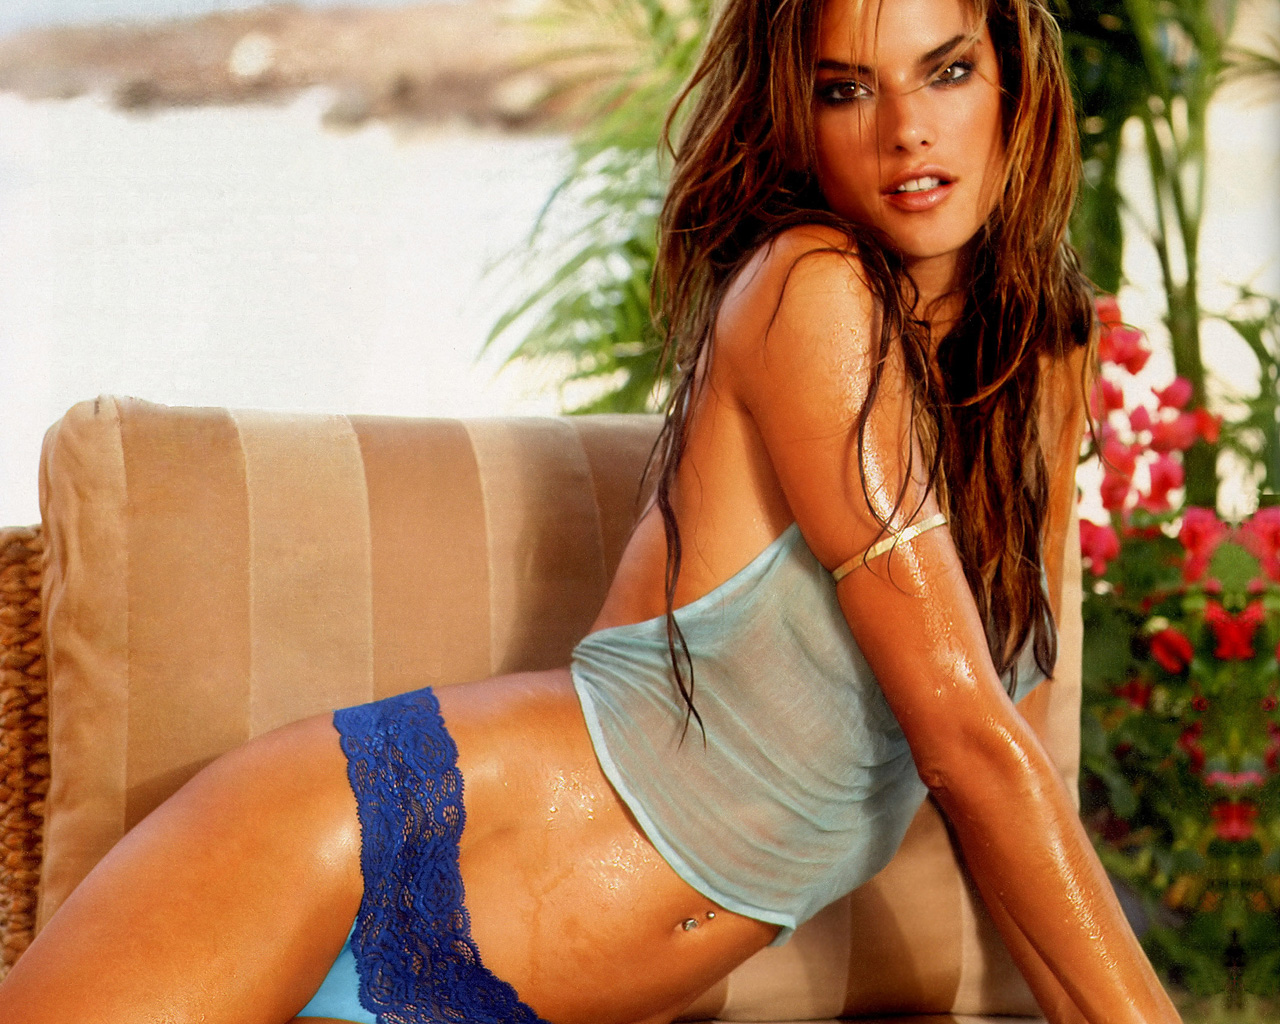 Hot Brazilian Girl pertaining to panas: alessandra ambrosio - brazilian supermodel pictures